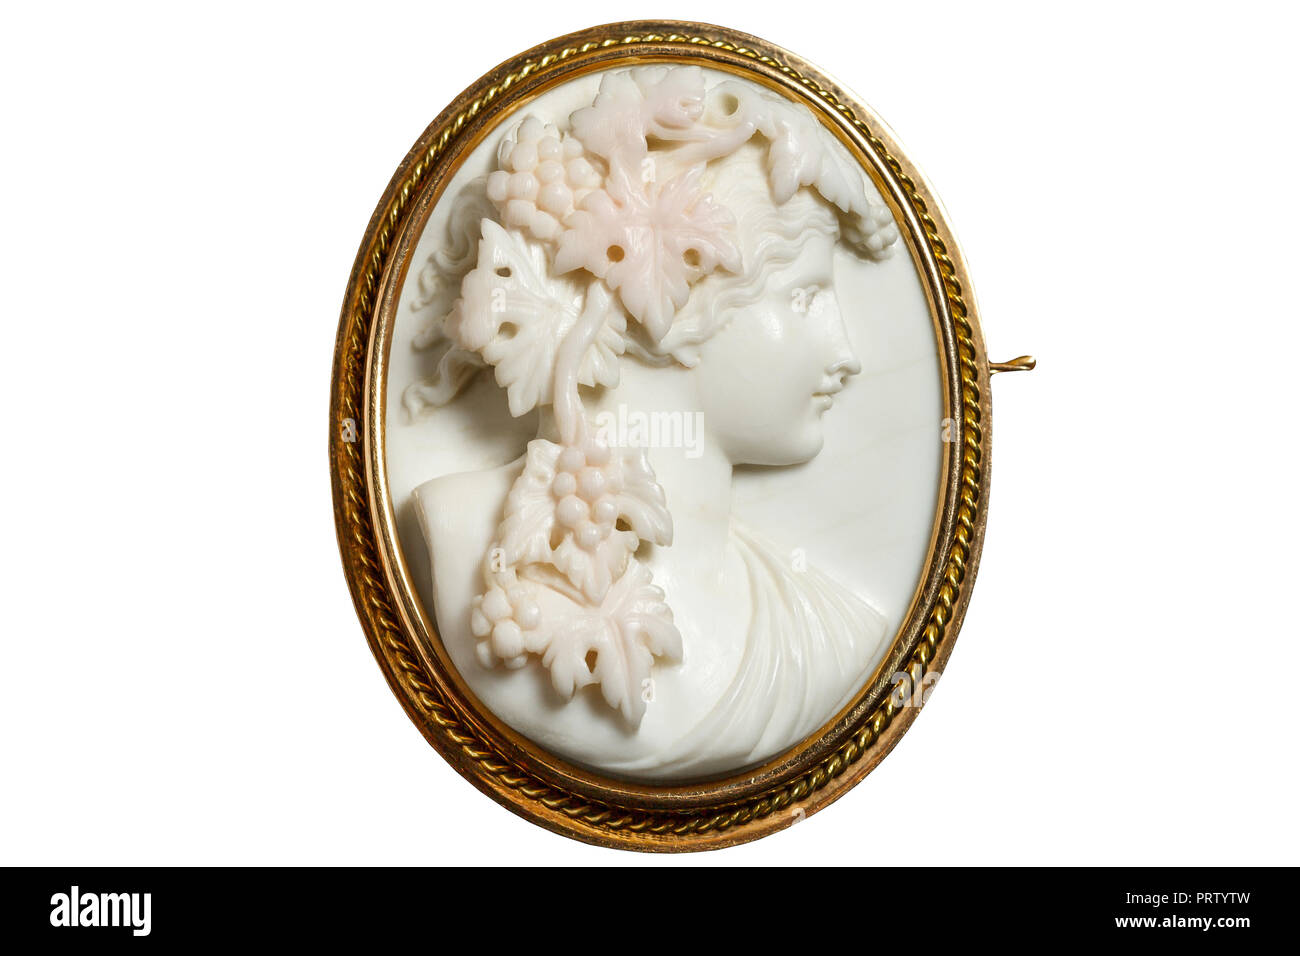 Gold vintage brooch with a woman's face in profile. White background - Stock Image